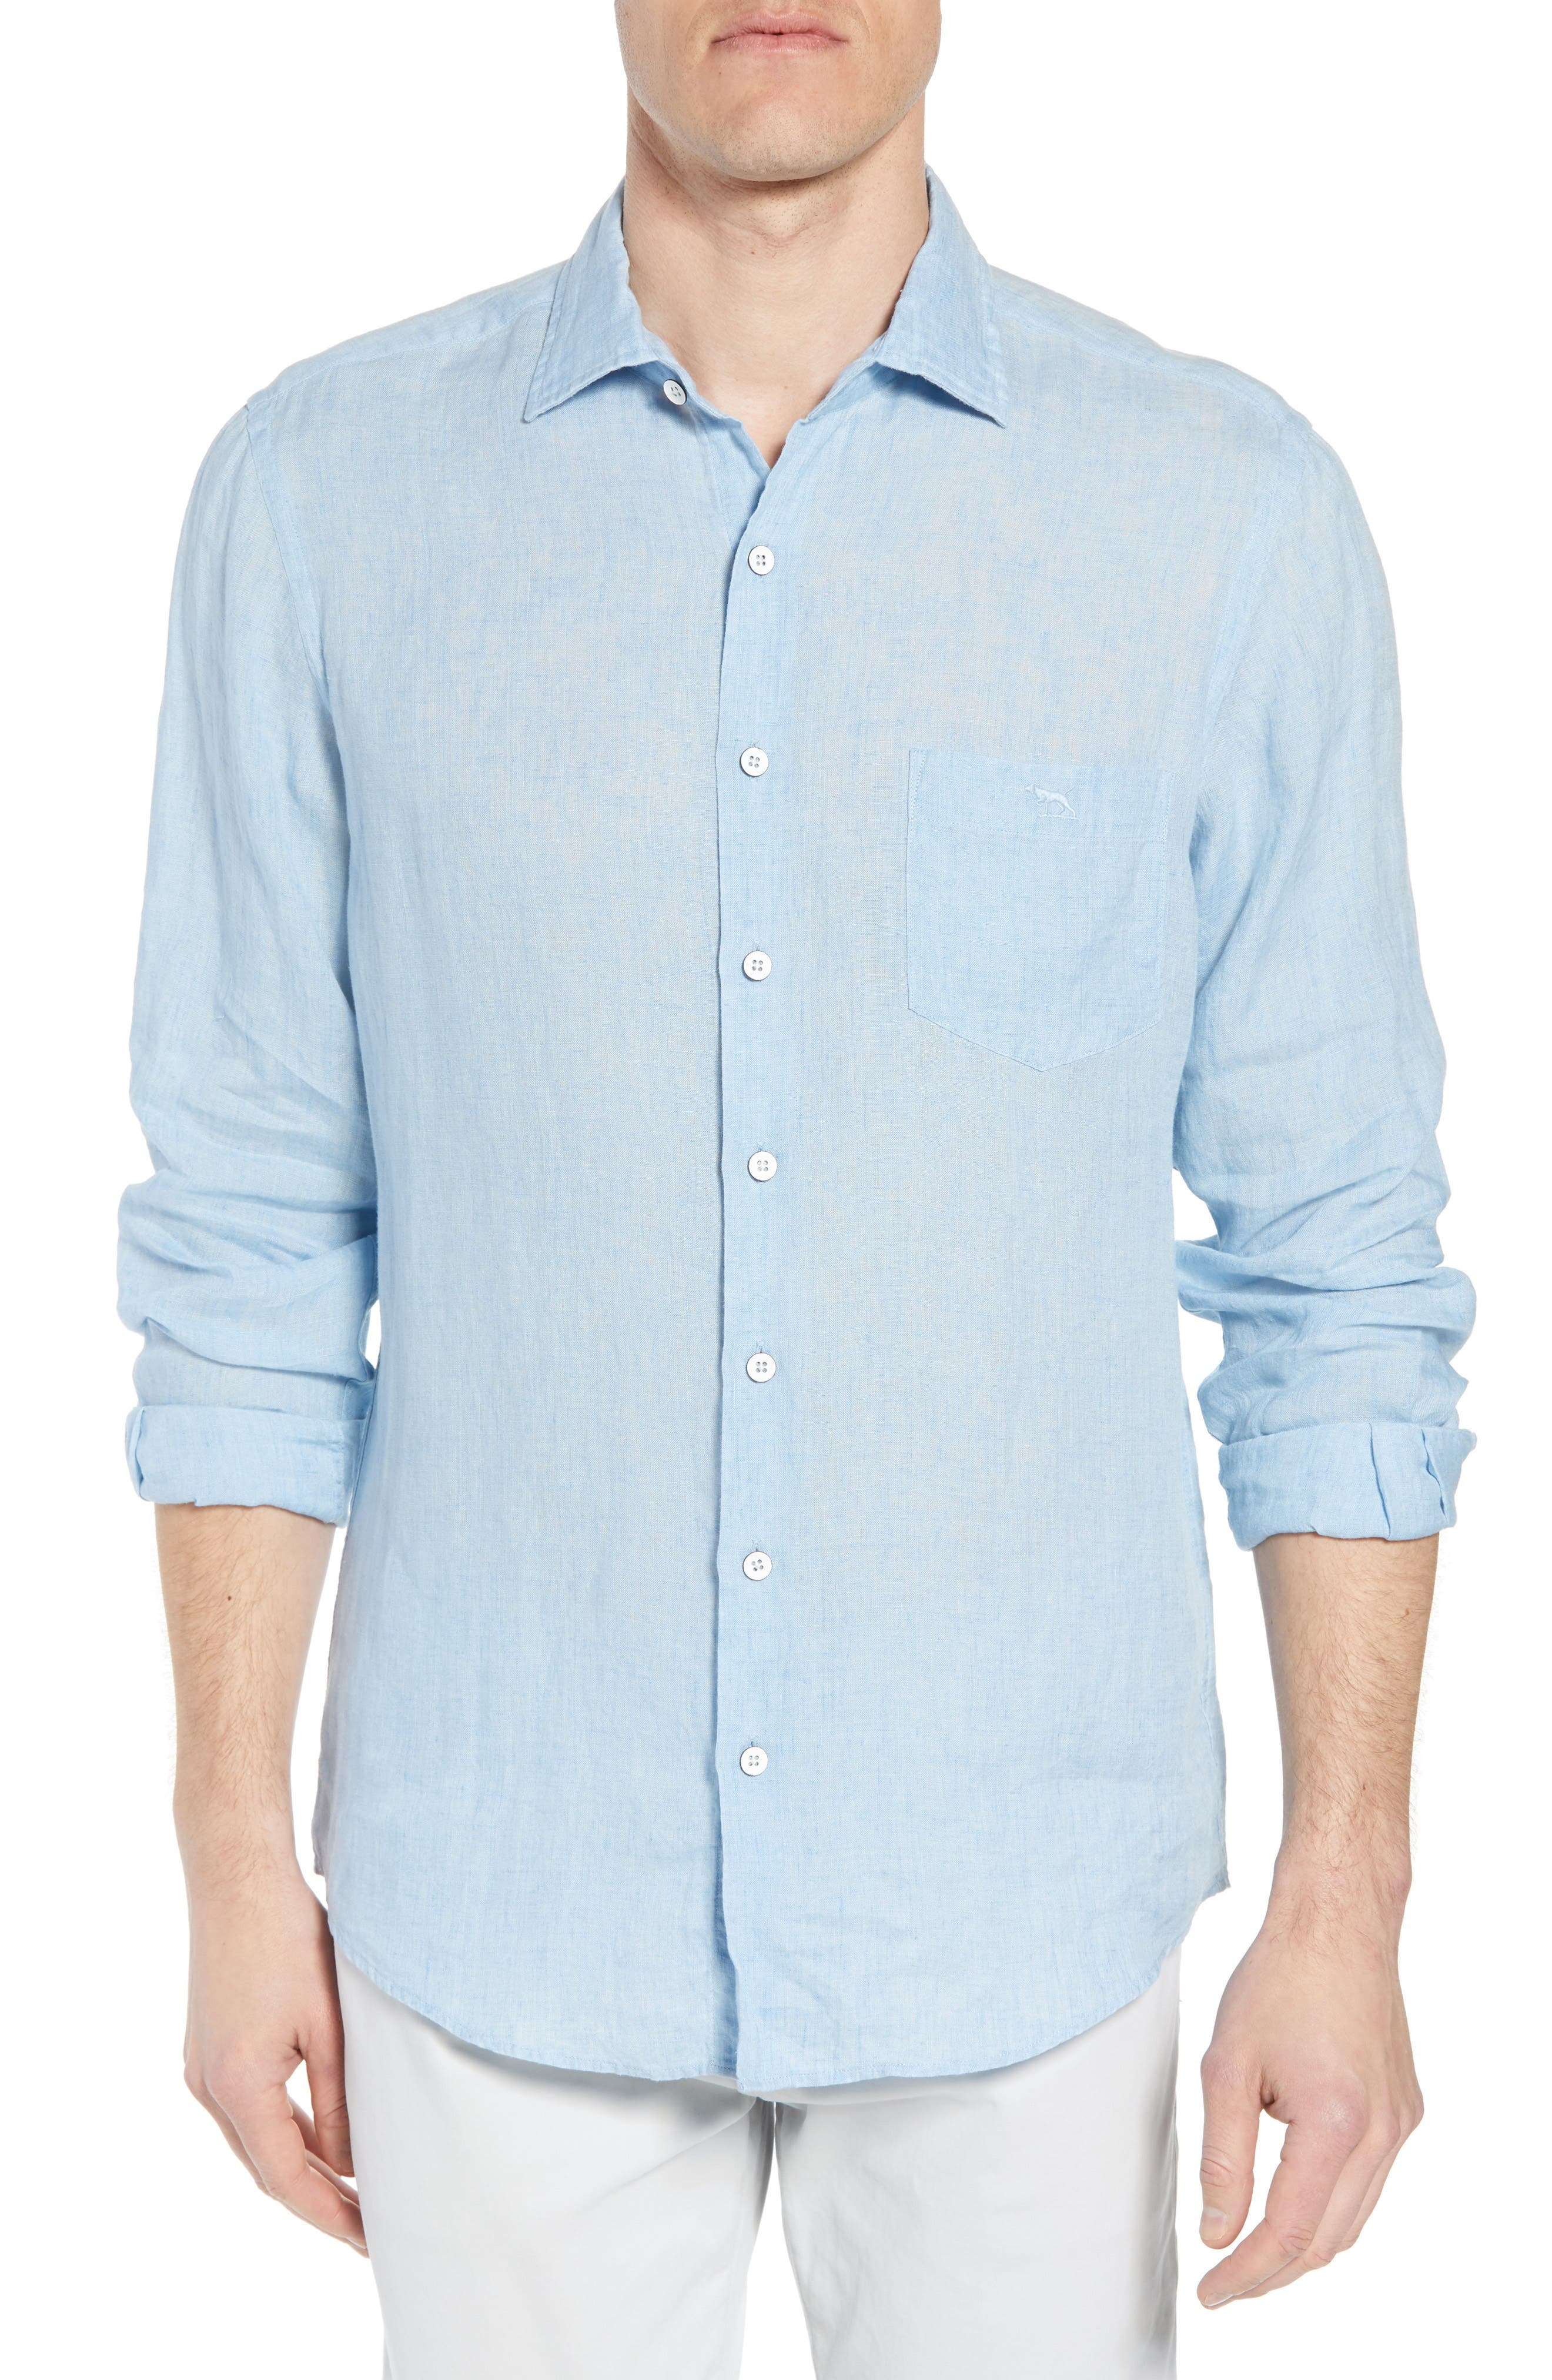 Harris Bay Regular Fit Linen Sport Shirt,                         Main,                         color, STONEWASH